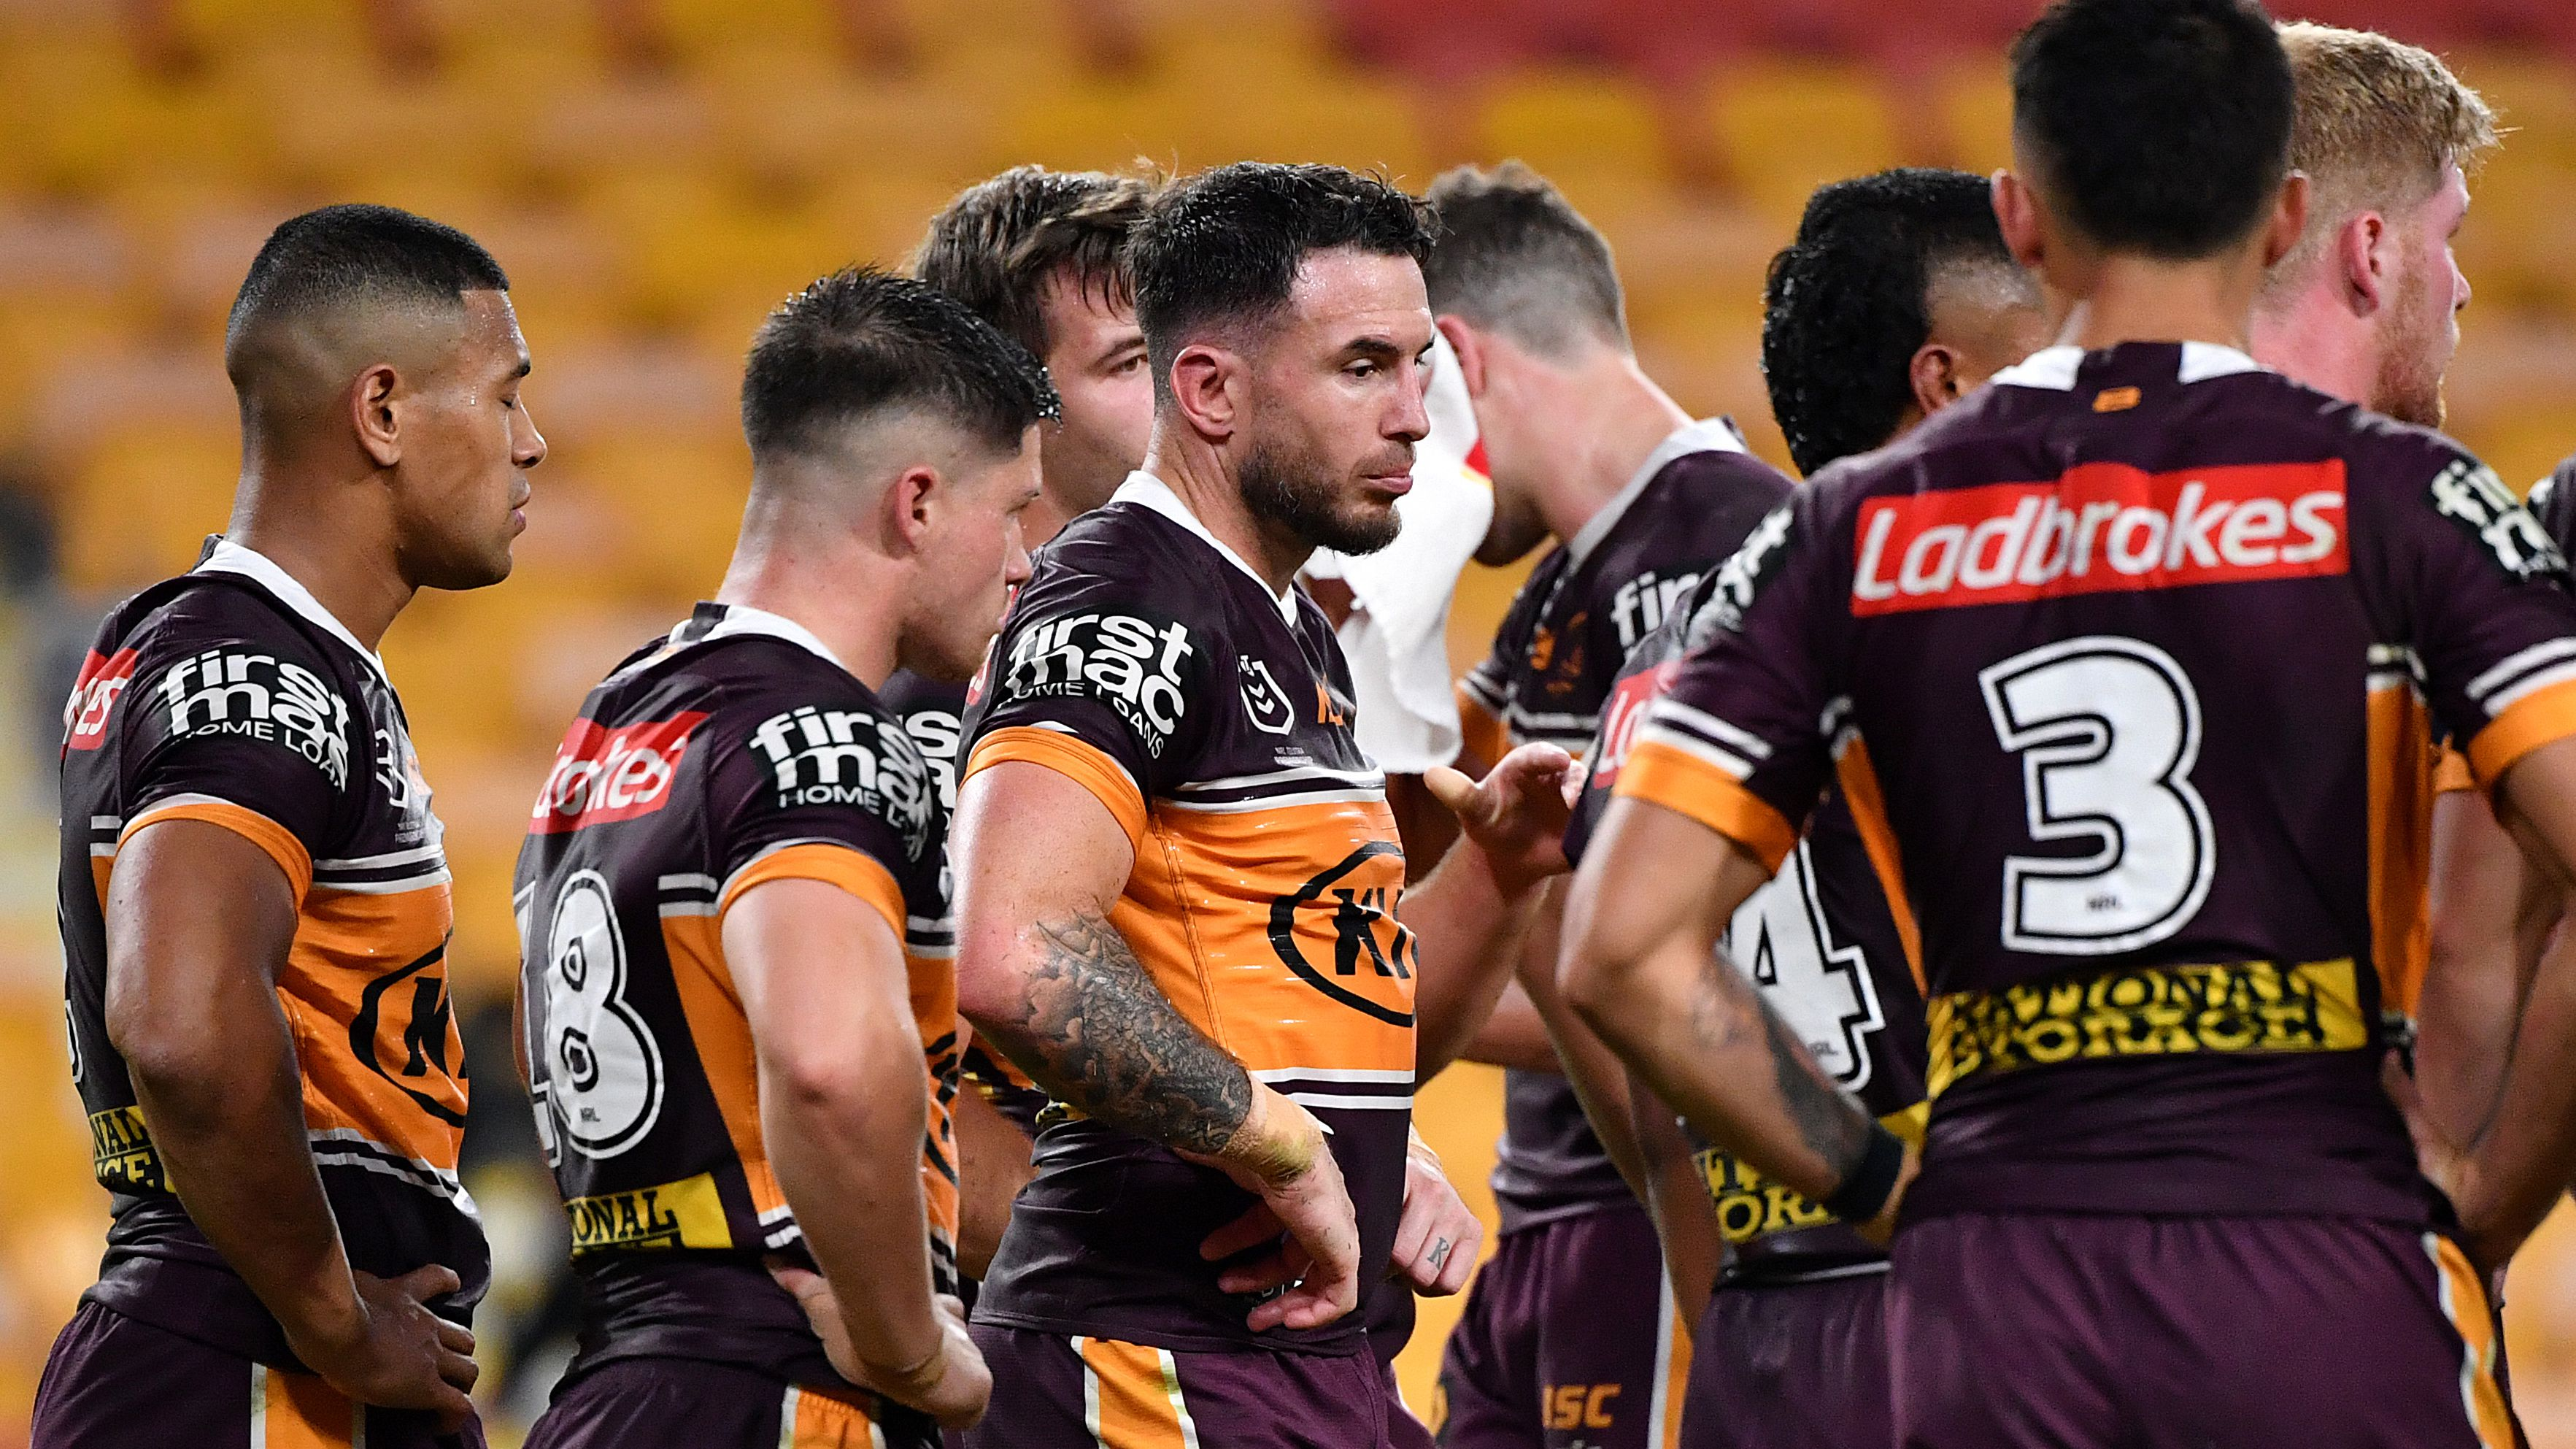 Brisbane Broncos players